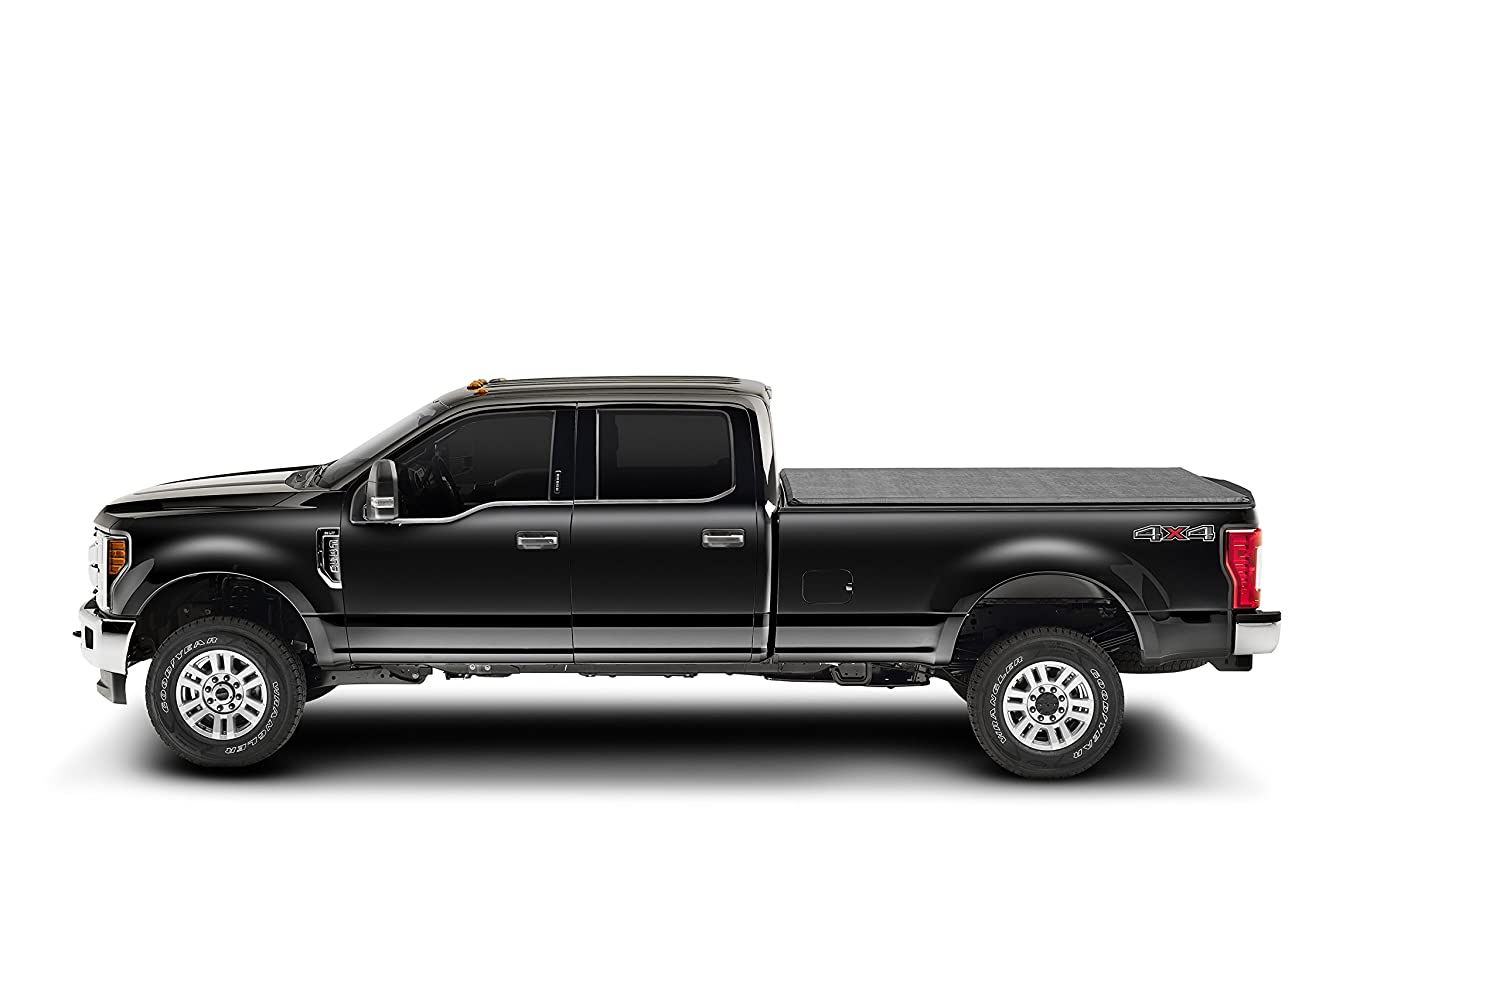 Truxedo Truxport 279101 Soft Roll Up Tonneau 1964 Ford Short Bed Cover For F 250 350 450 Super Duty 65 2017